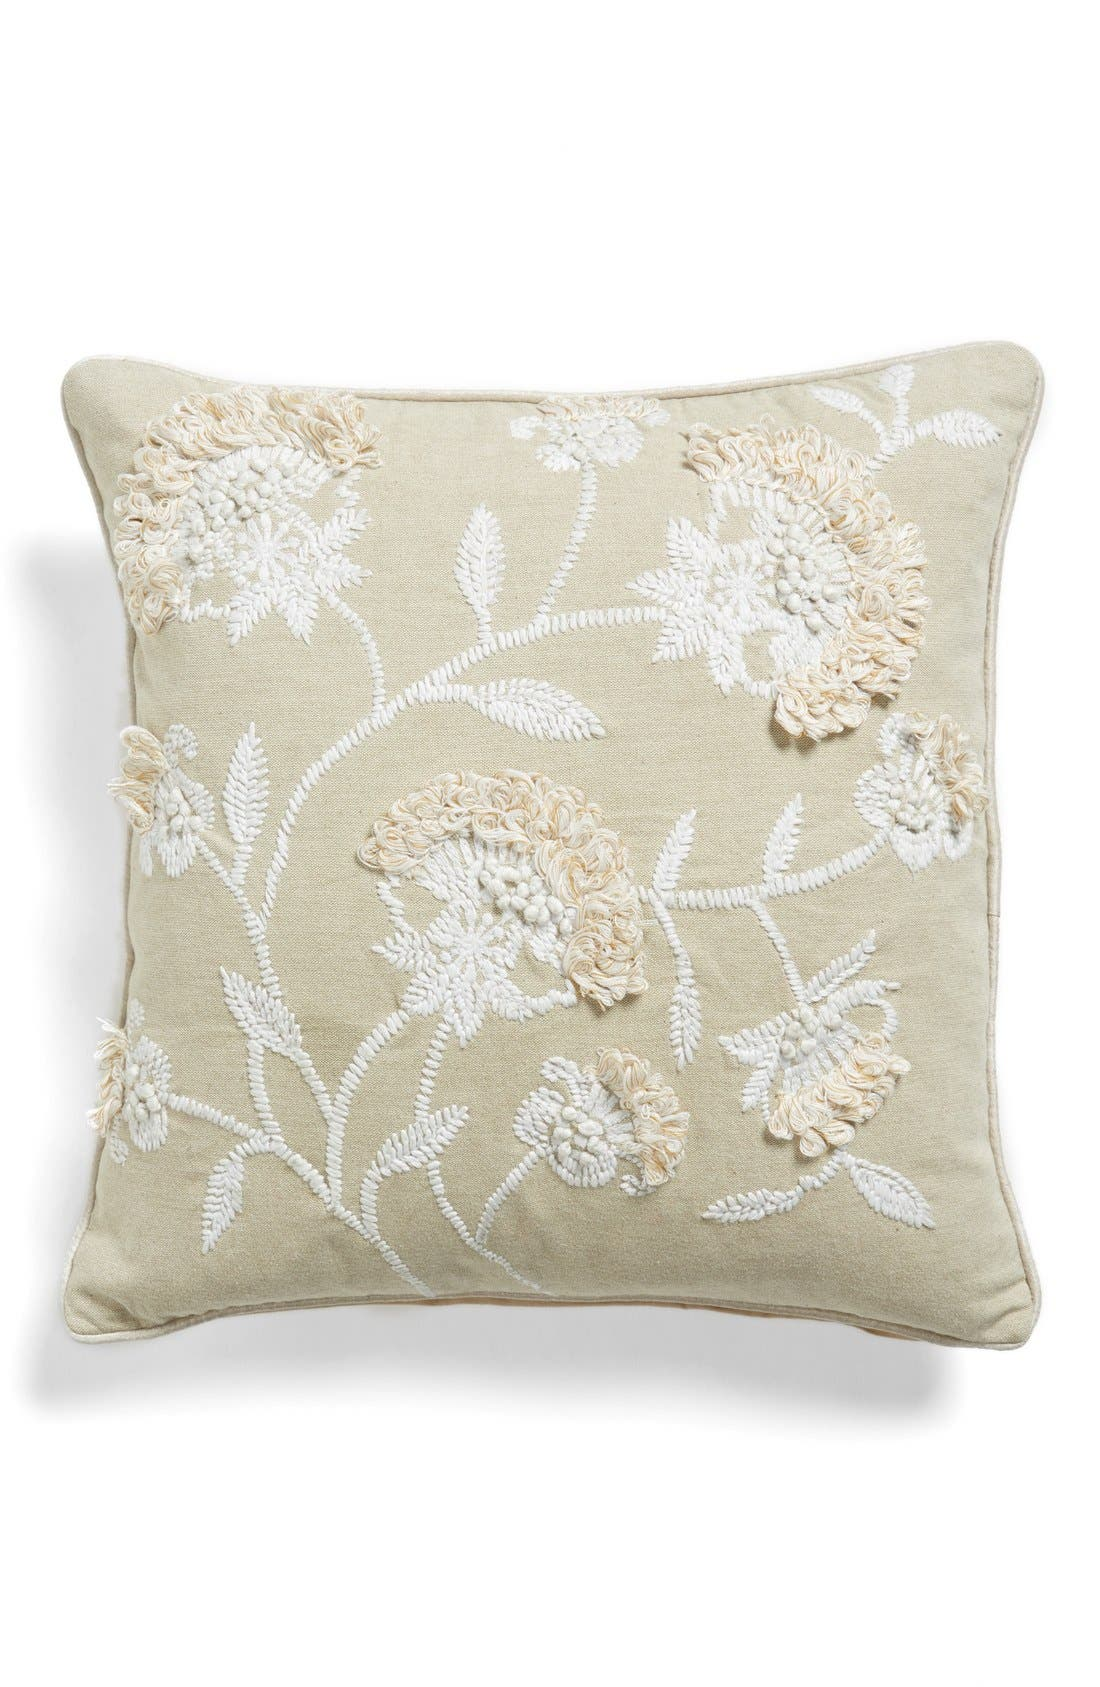 Main Image - Levtex Floral Stitch Accent Pillow